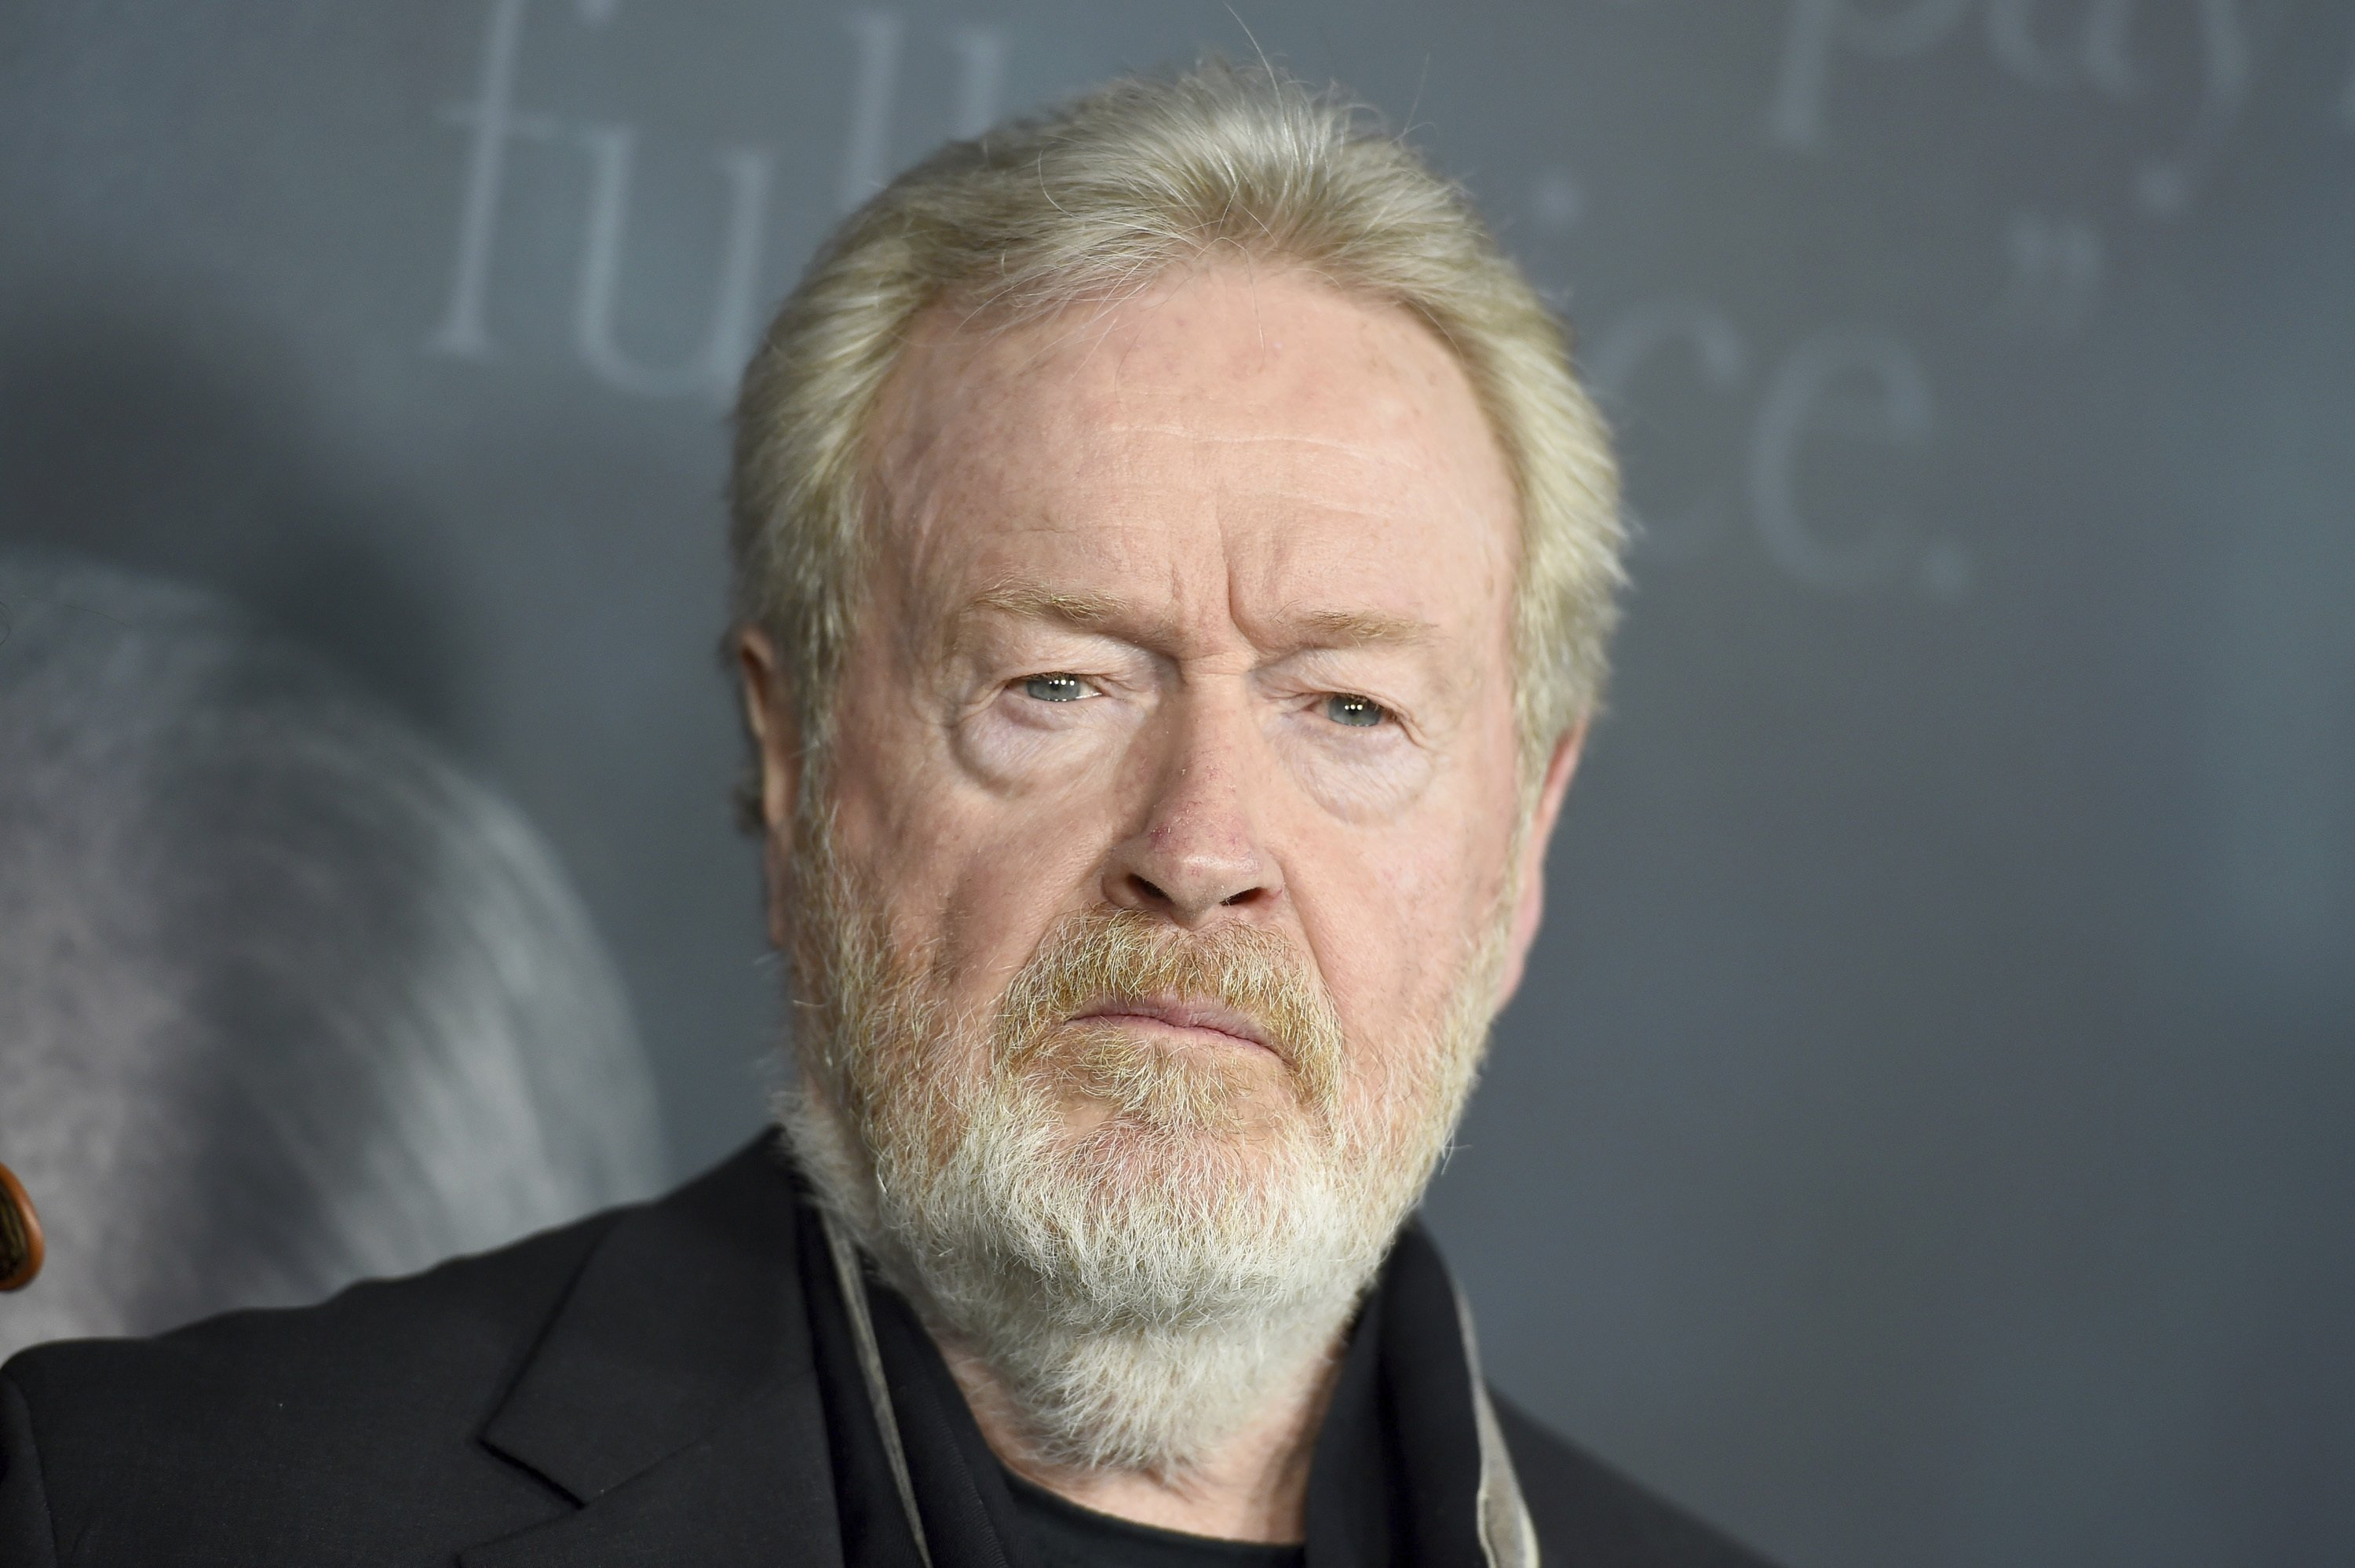 Director Ridley Scott attends the world premiere of 'All the Money in the World,' Beverly Hills, U.S., Dec. 18, 2017. (AP via Shutterstock)